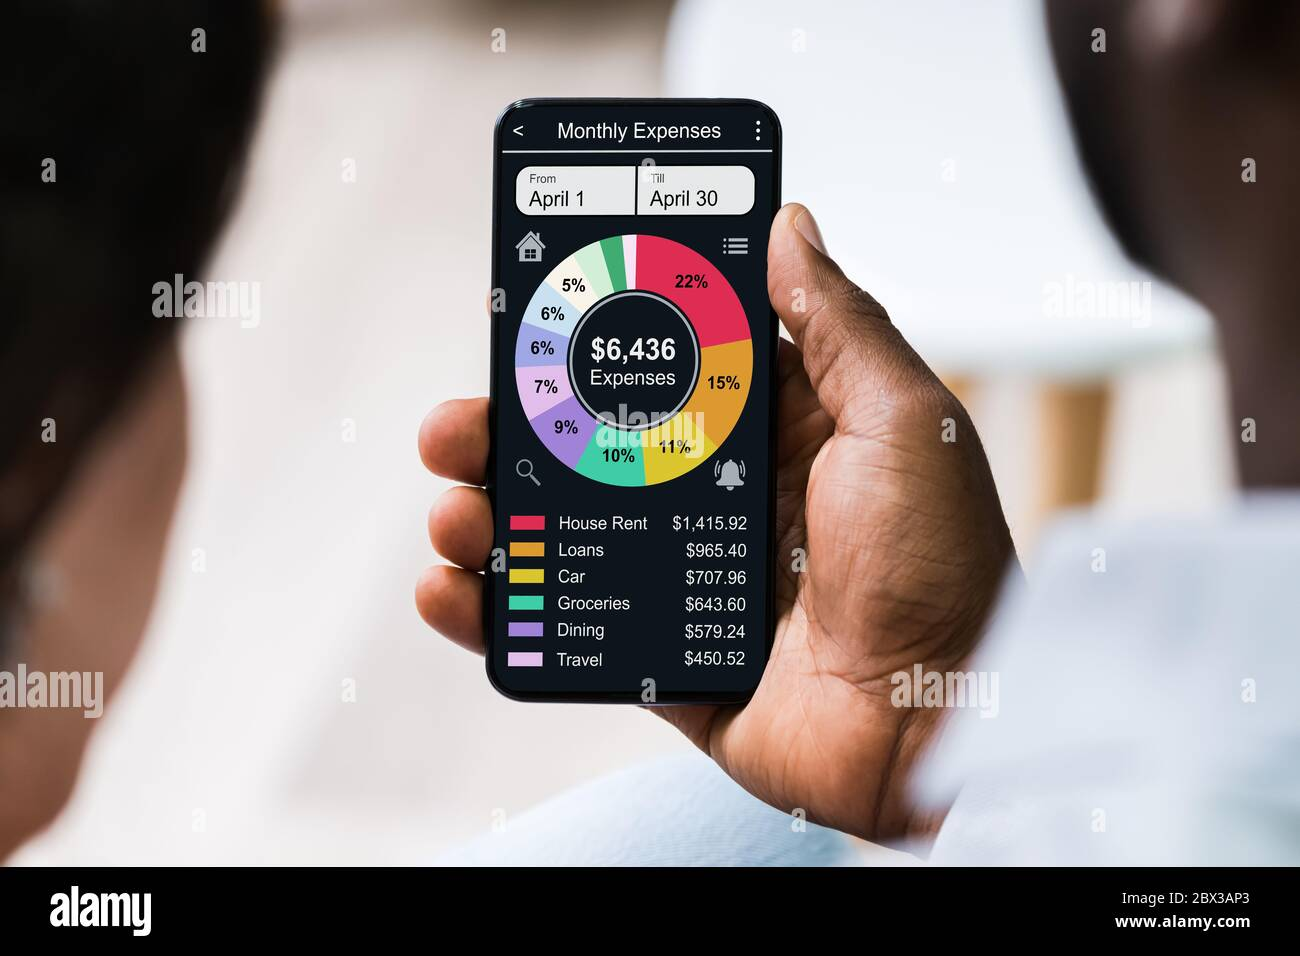 Mobile Phone App For Money, Budget And Expense Tracking Stock Photo